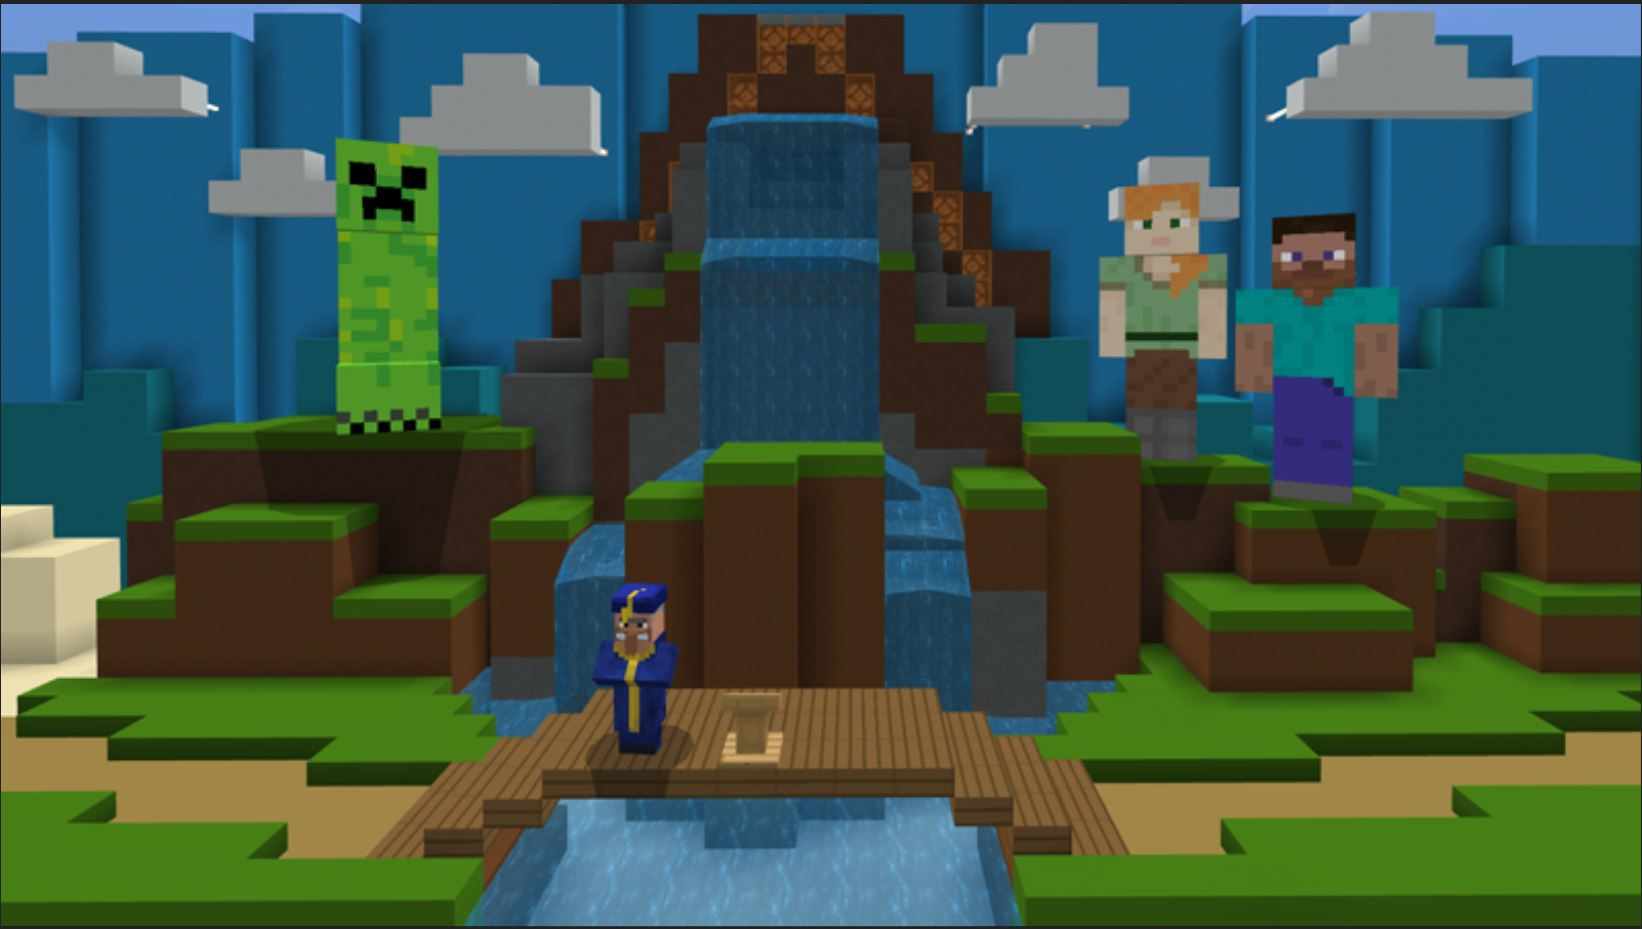 The Graduation Celebration Minecraft Marketplace Item Allows Students To Walk Across The Stage In Minecraft